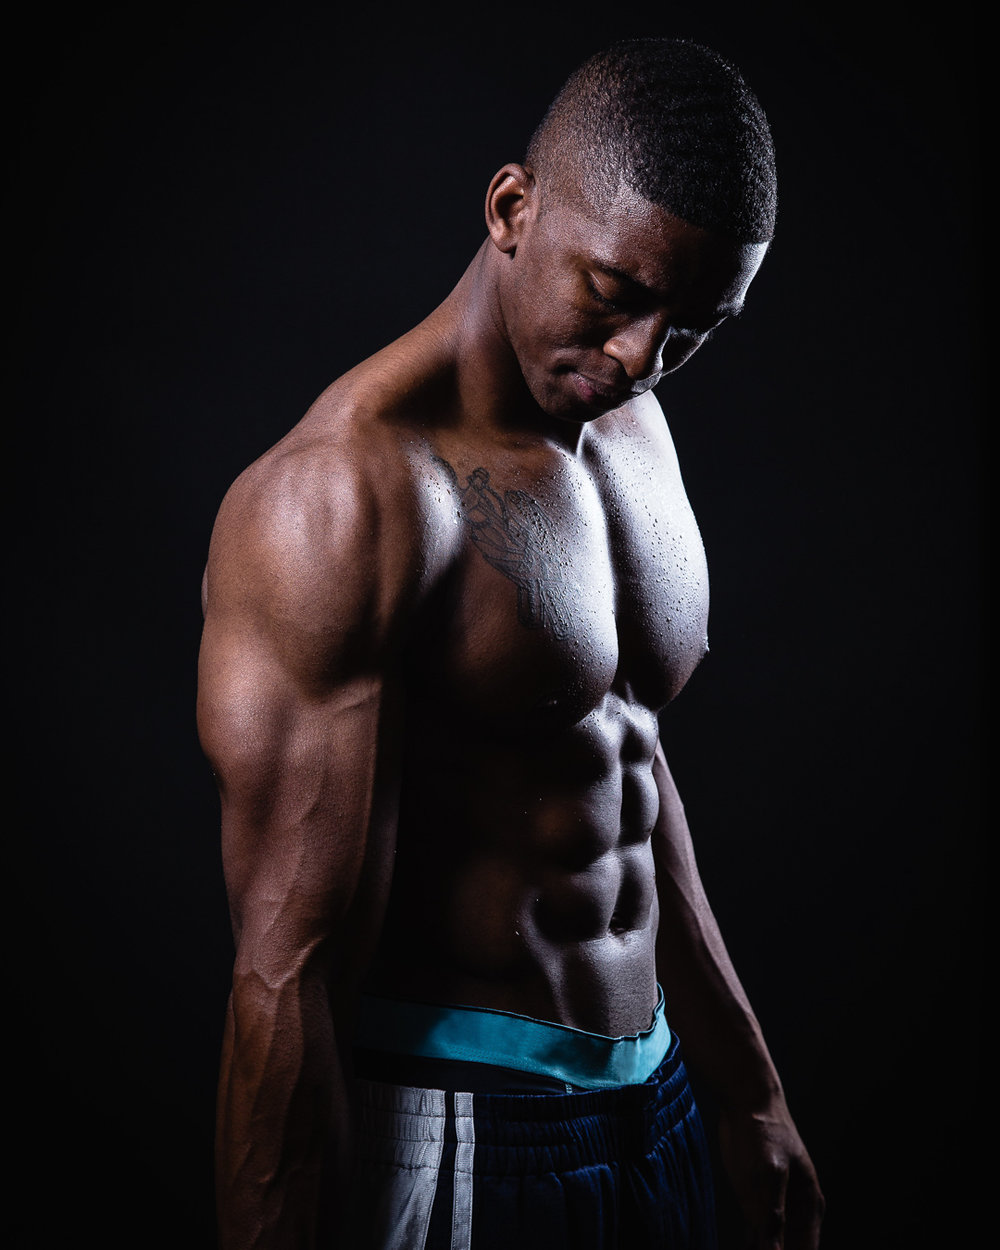 161512_Evan_Laveist_Fitness_6930-Edit.jpg